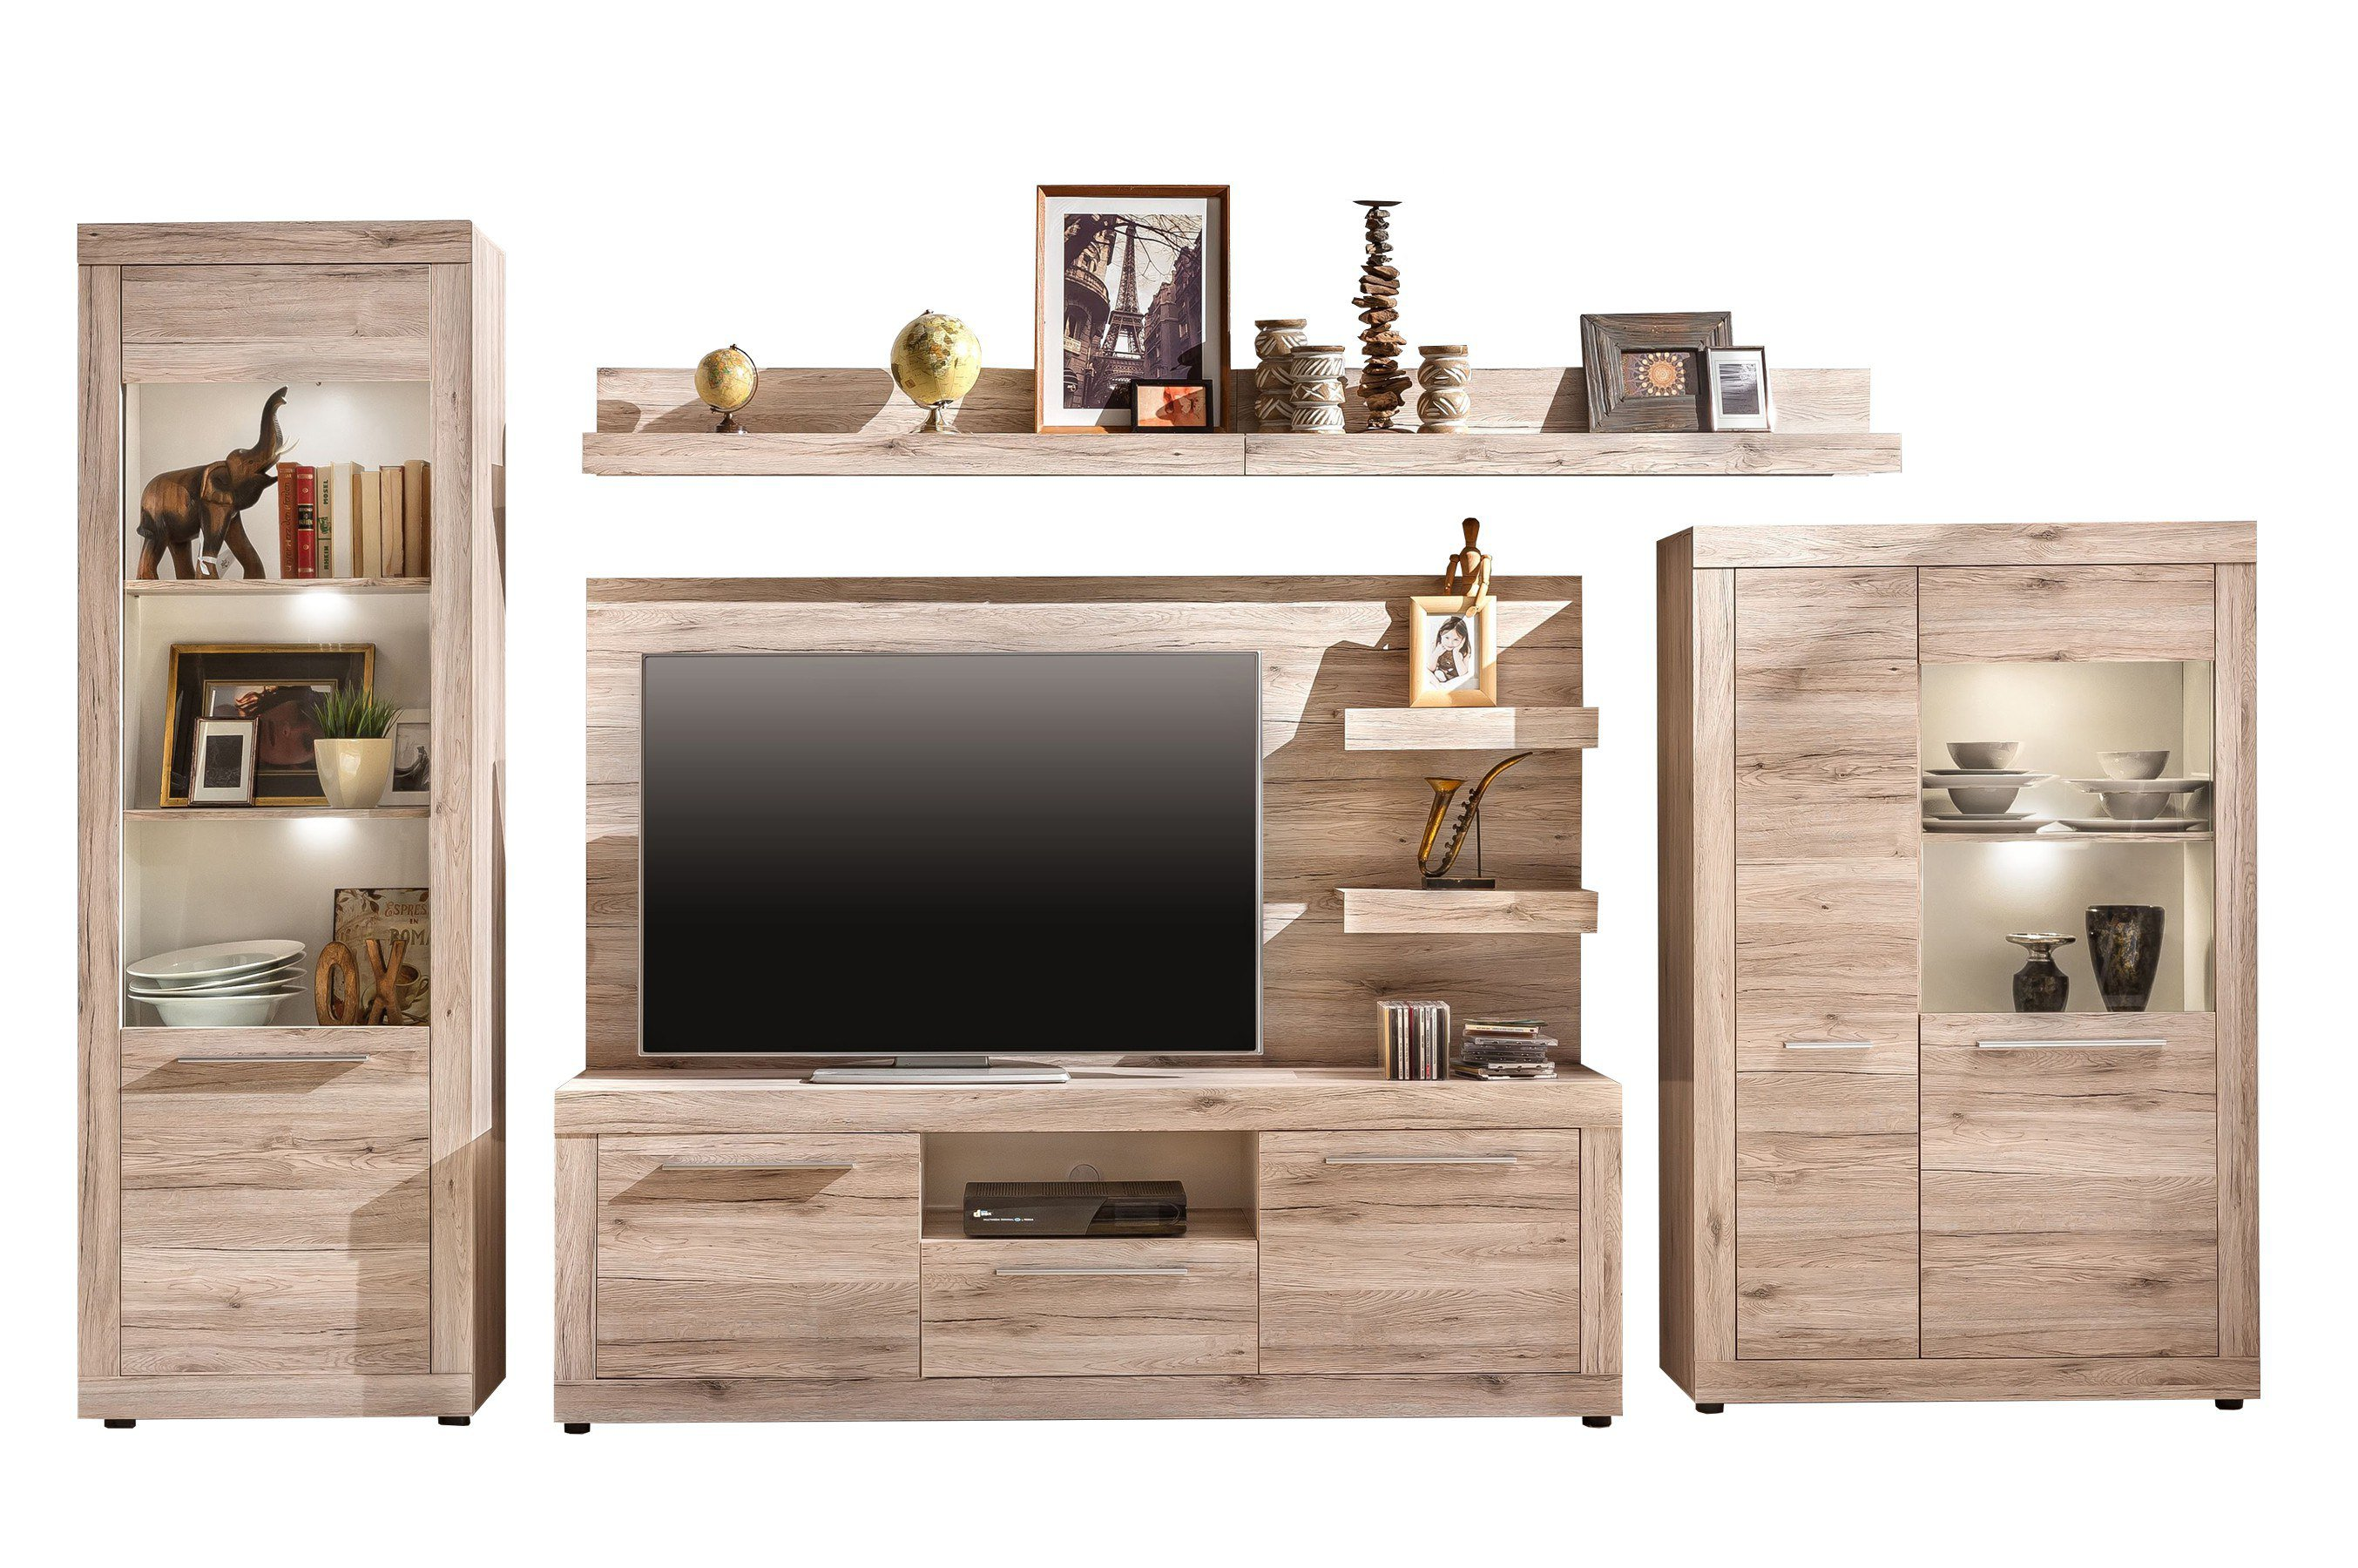 wohnwand passat 1505 971 87 von trendteam m bel letz ihr online shop. Black Bedroom Furniture Sets. Home Design Ideas